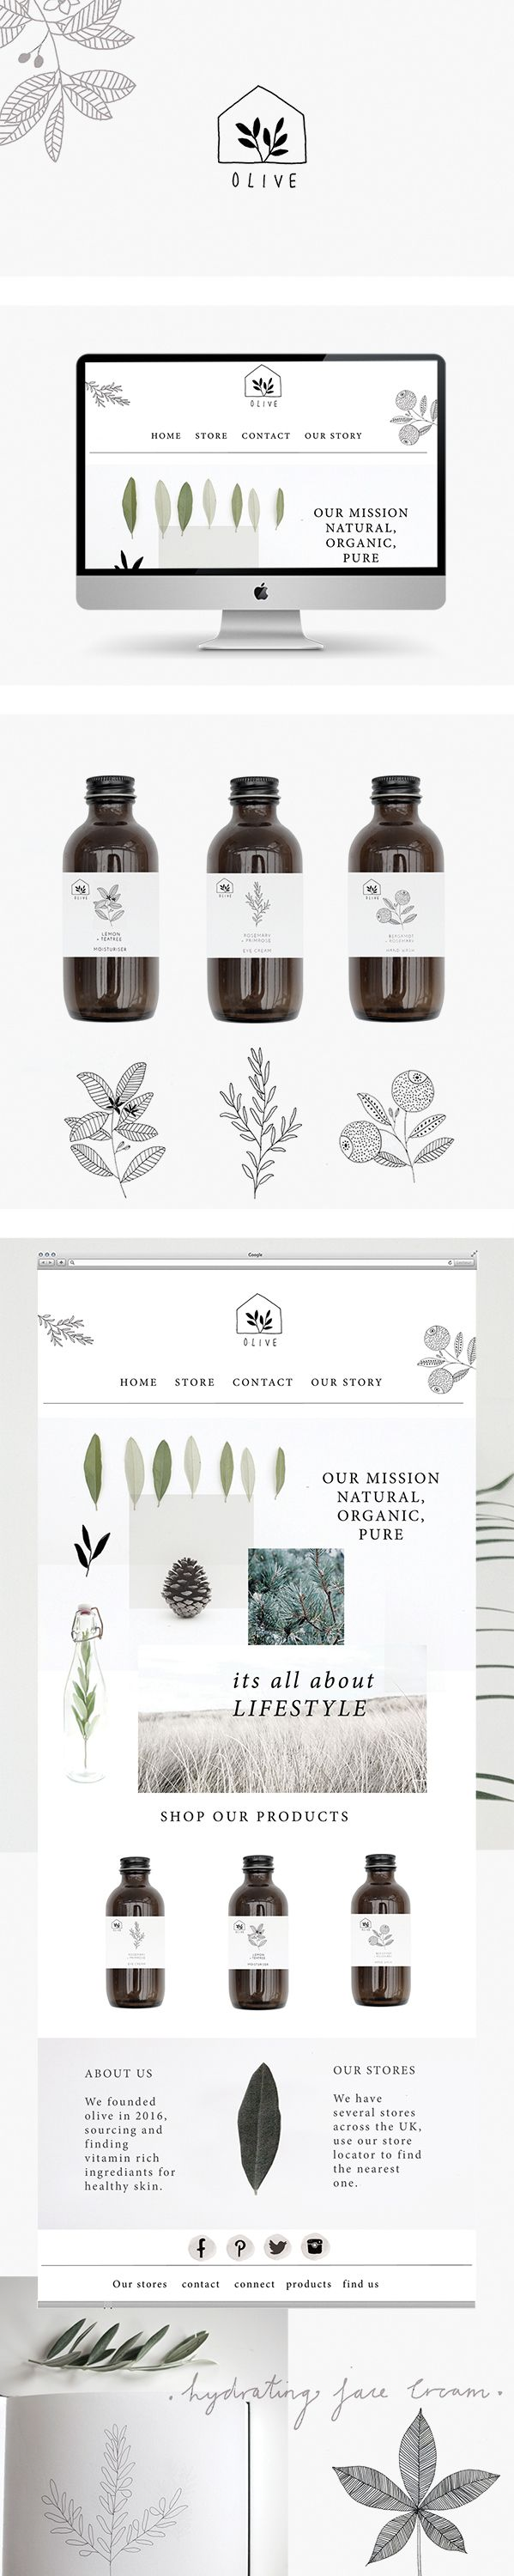 Branding and website for olive skincare by Ryn Frank